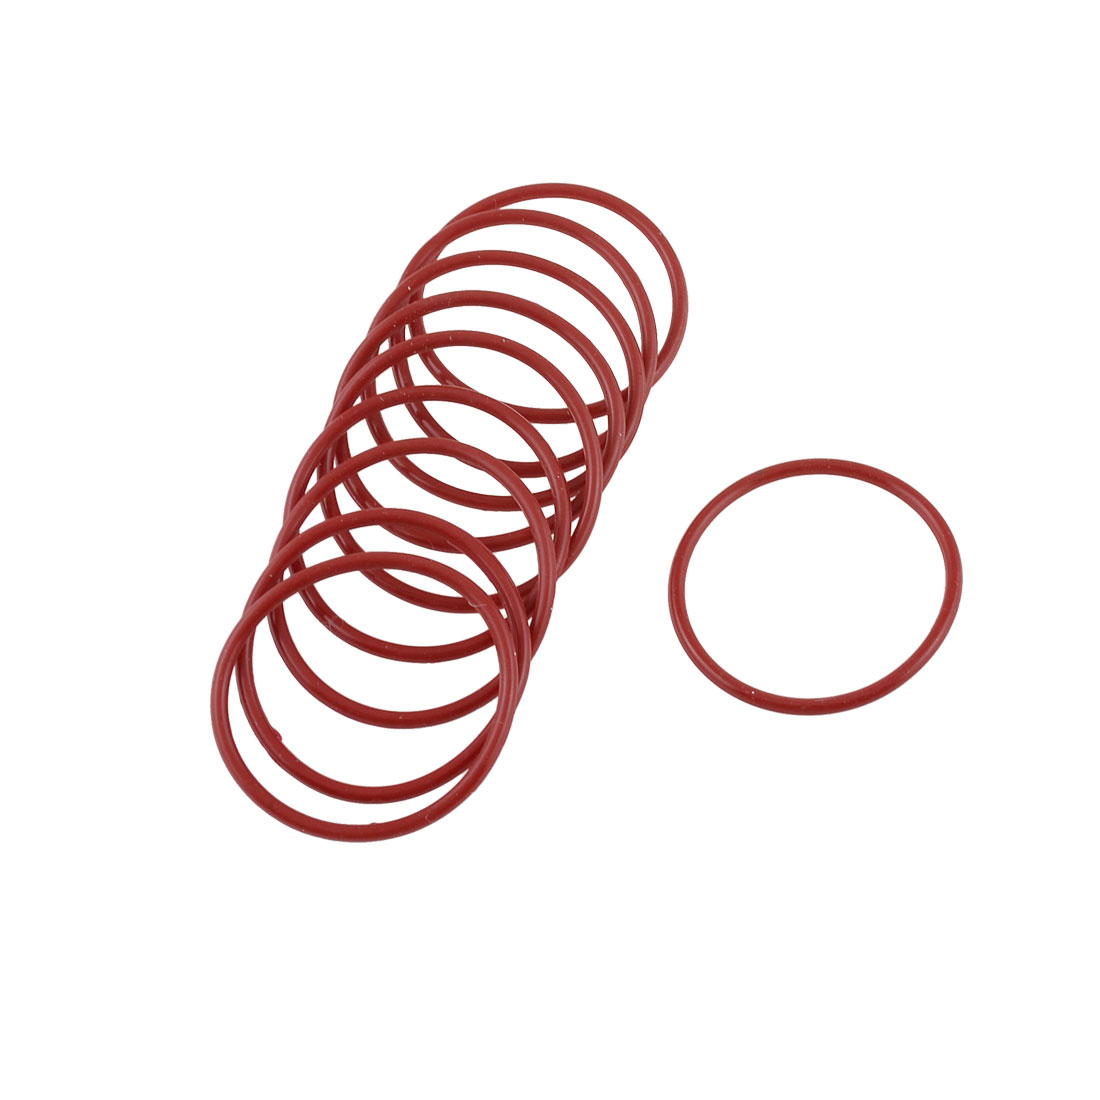 10pcs 35mm Outside Dia 2mm Thickness Rubber Oil Filter Seal Gasket O Rings Red